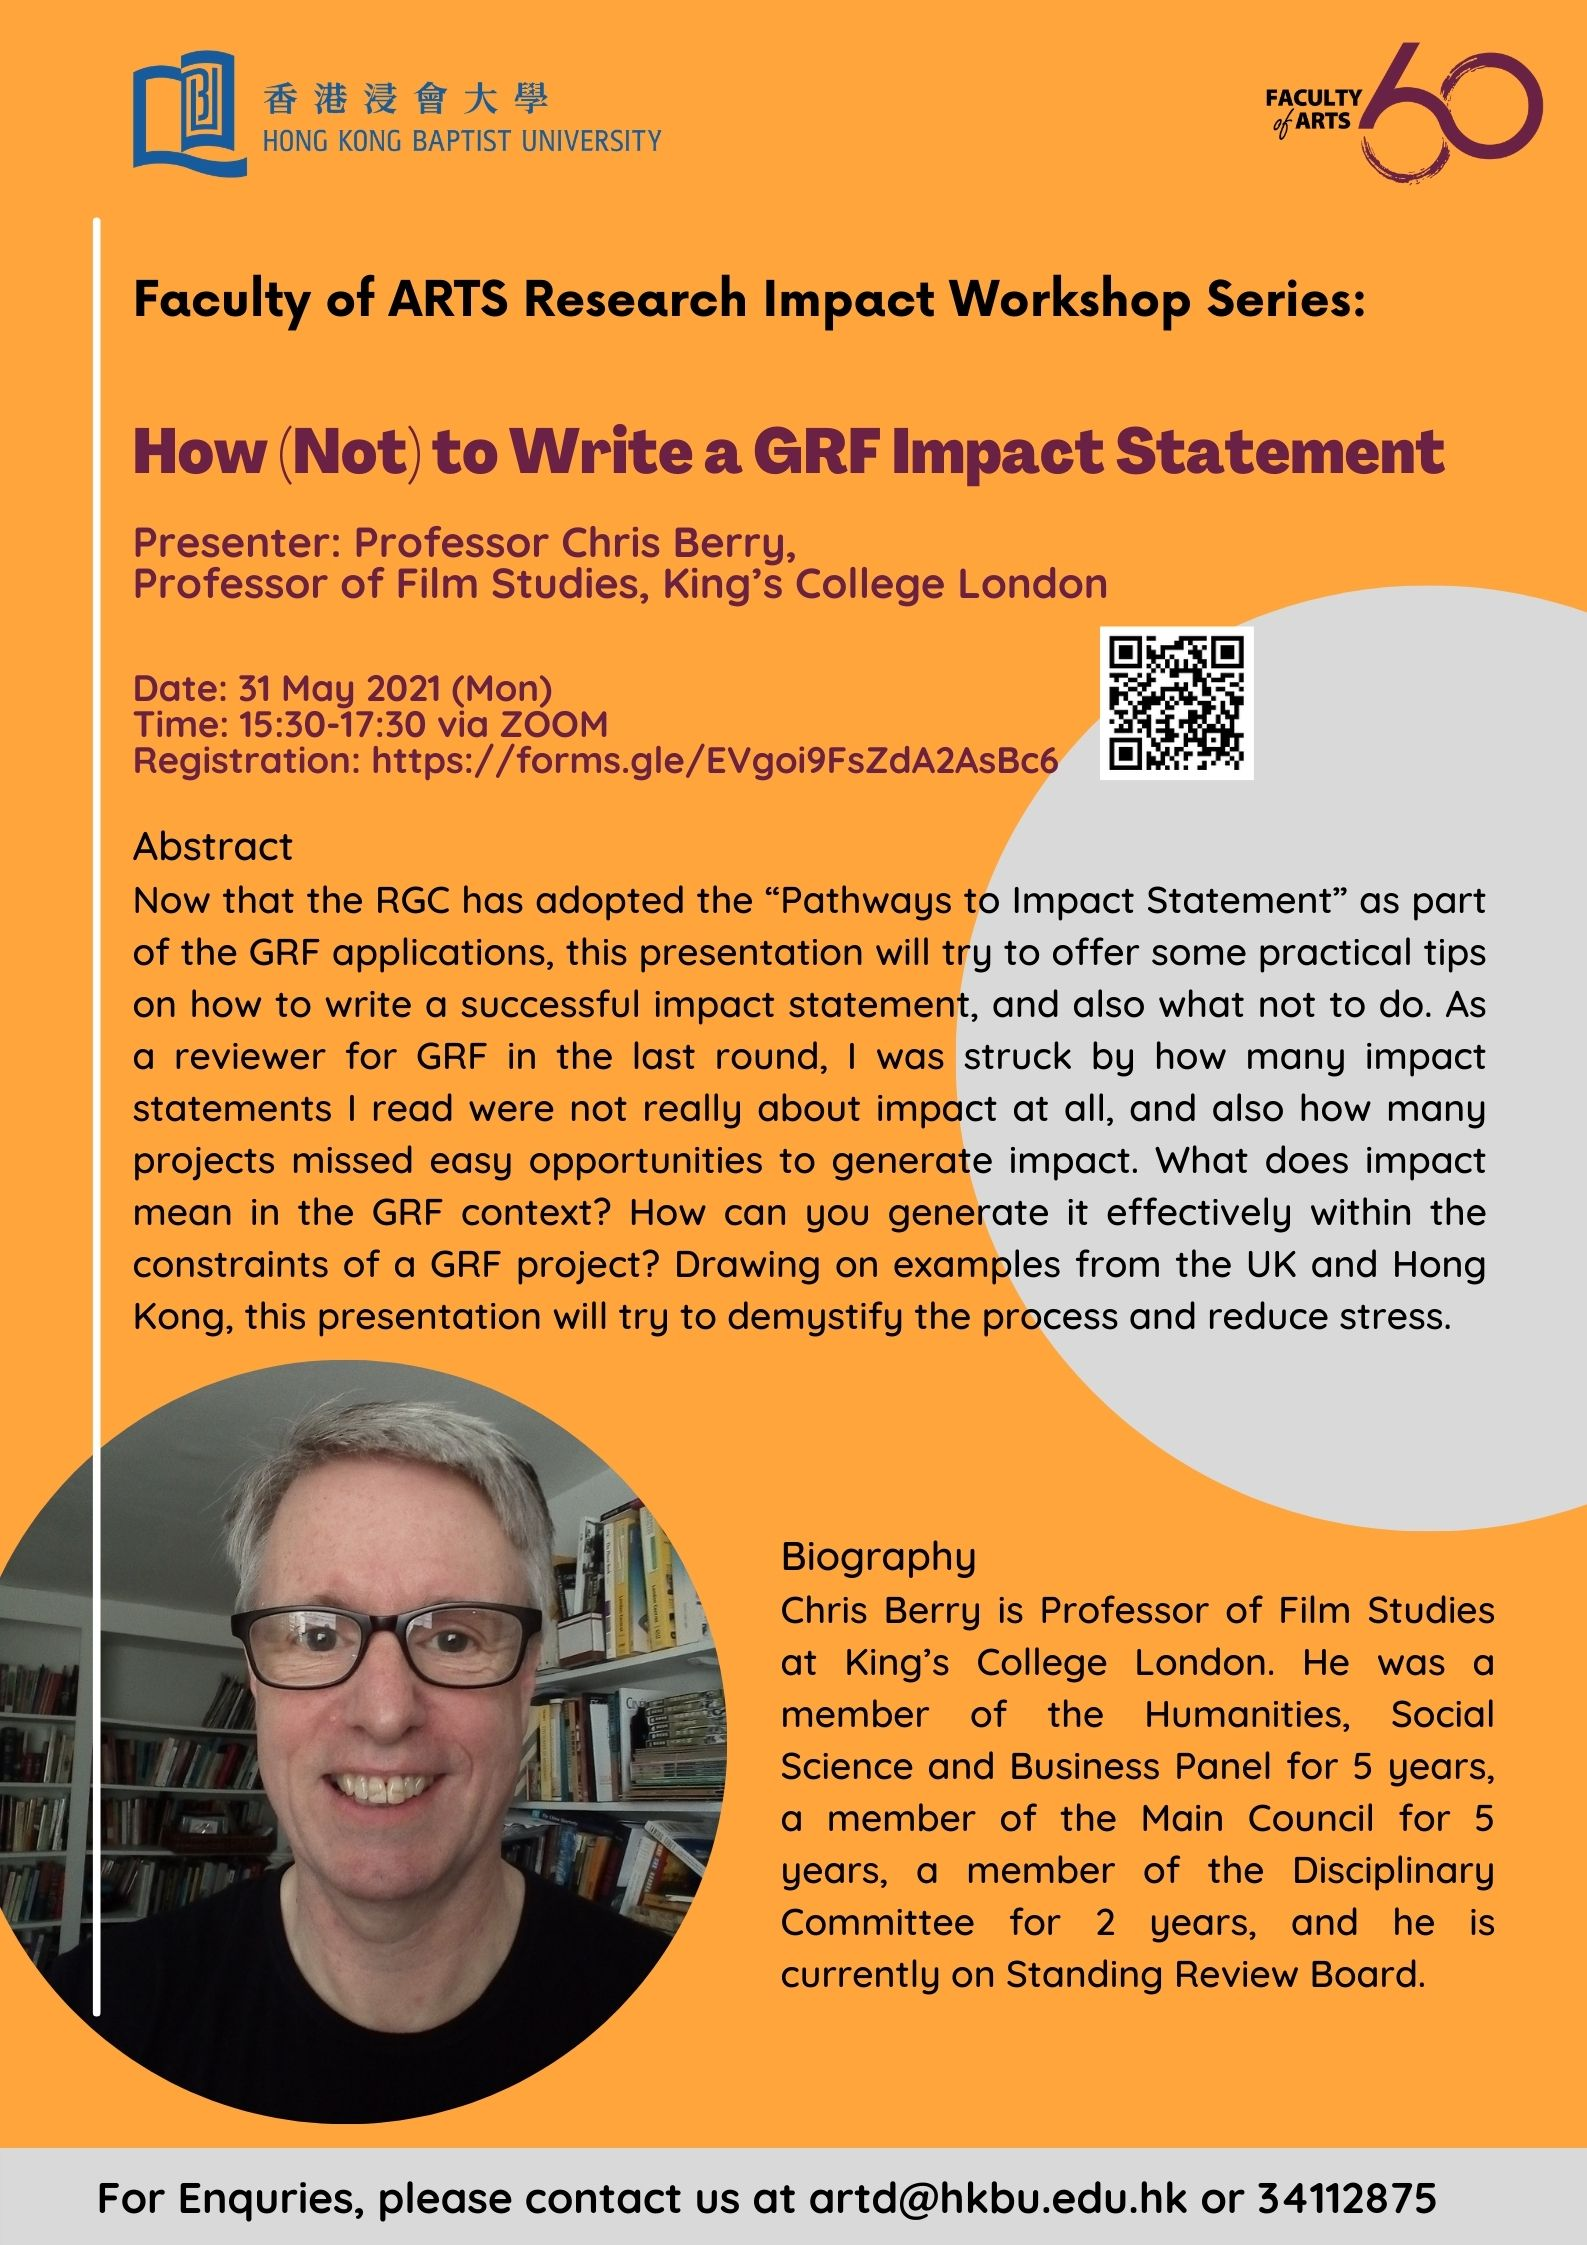 research impact prof. chris berry how not to write a grf impact statement